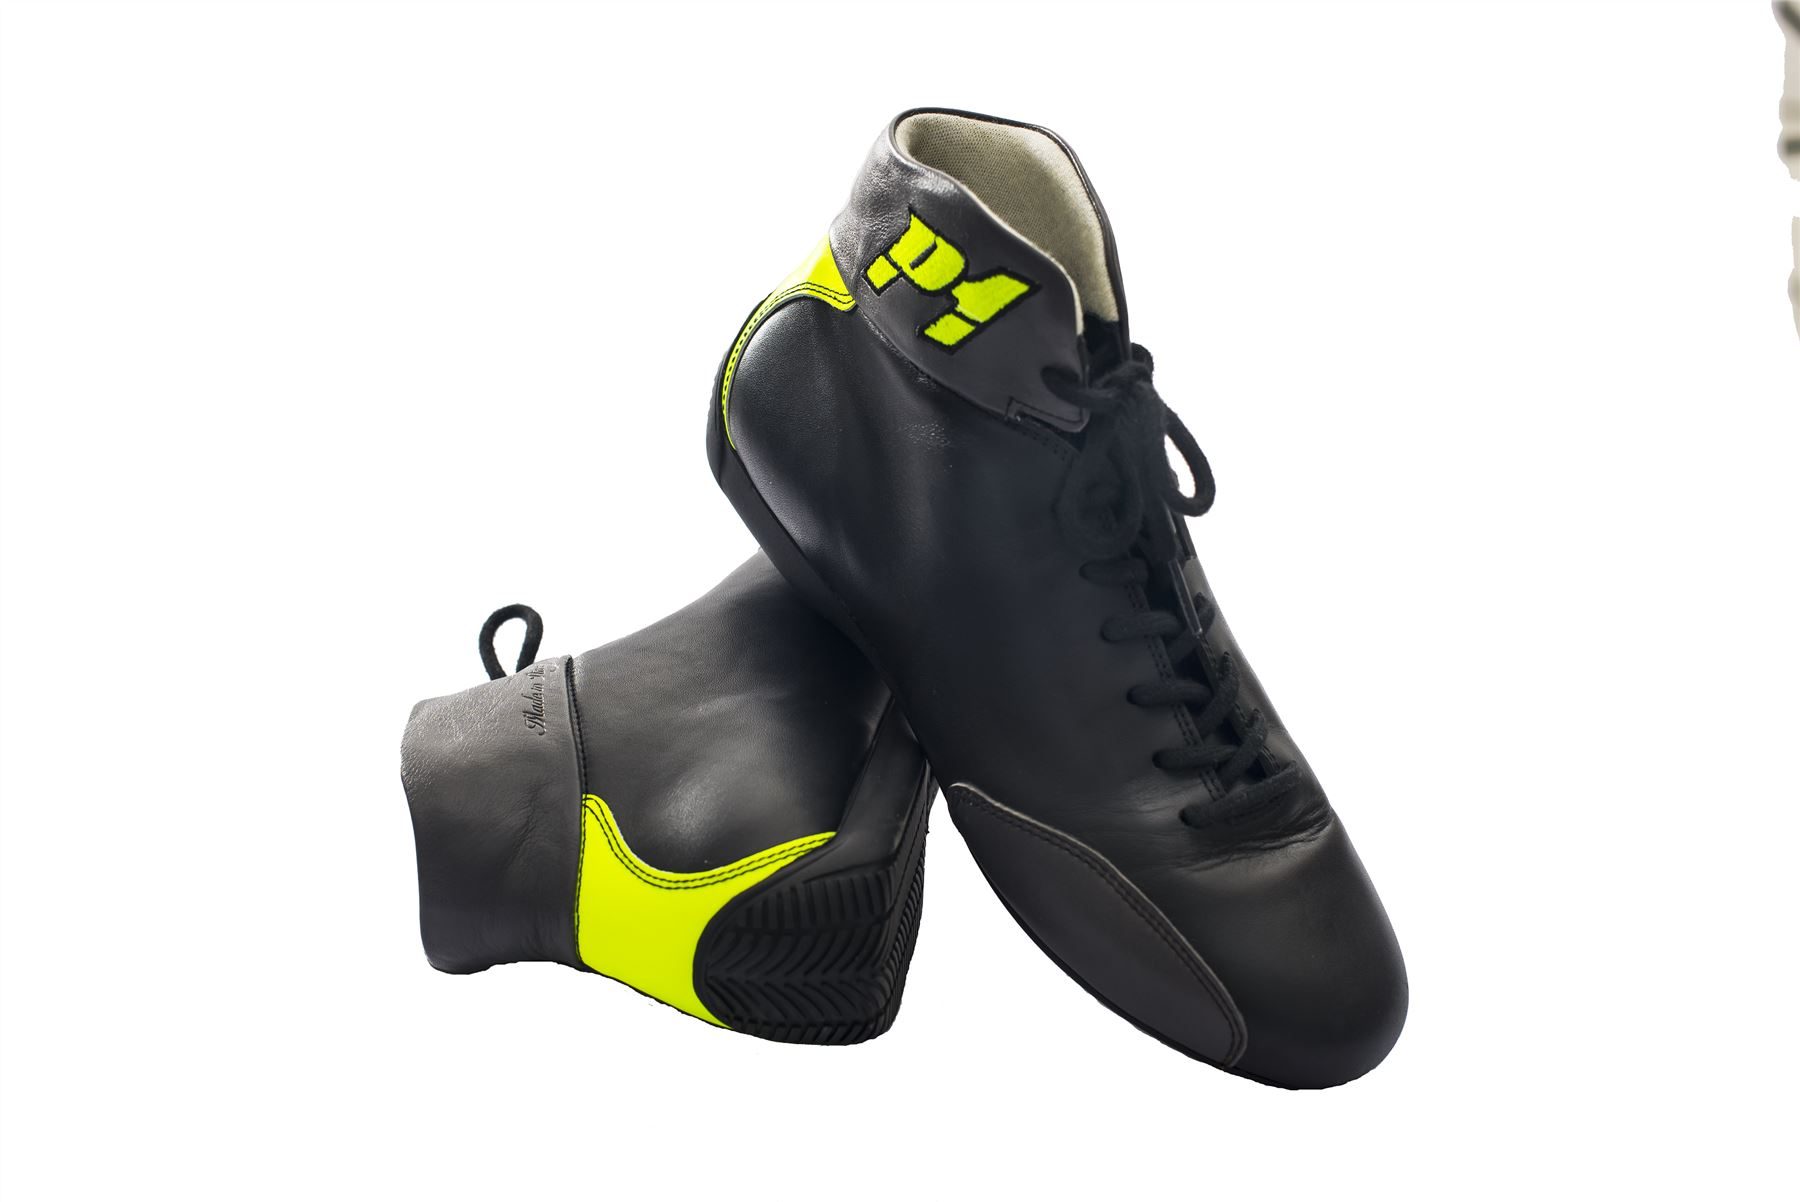 Indexbild 13 - P1-Racewear-Monza-FIA-Approved-Soft-Leather-Race-Rally-Boots-Black-Fluro